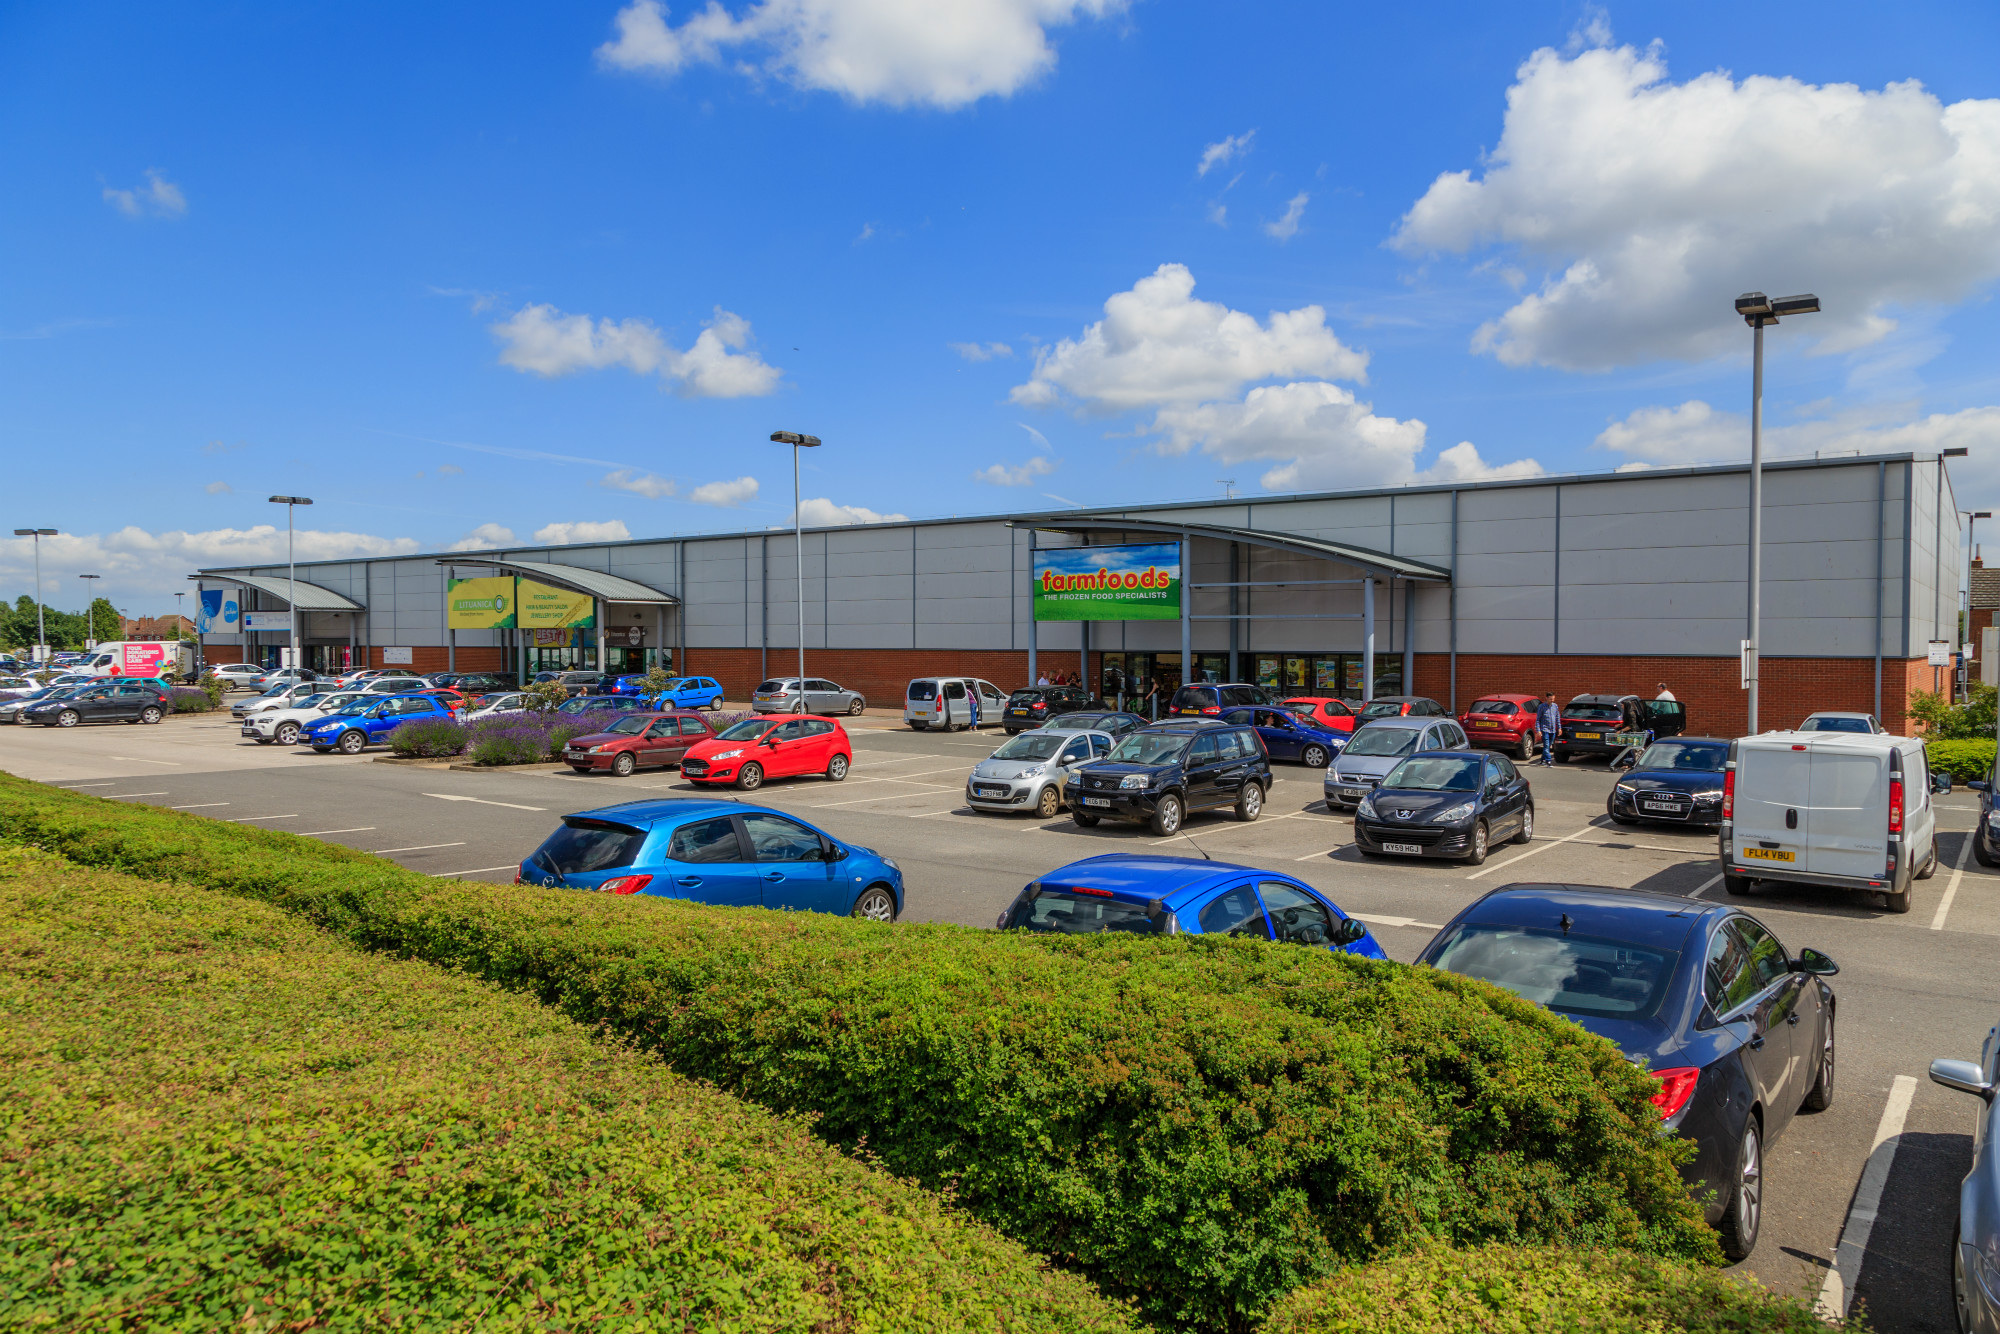 St Nicholas Retail Park, Edward Benefer Way, King's Lynn, PE30 2HW, Wickes, Lituanica, Norfolk Hospice, Domino's Pizza, Sue Ryder, Farmfoods, value, discount, retail park, car park, home bargains, cheap prices,